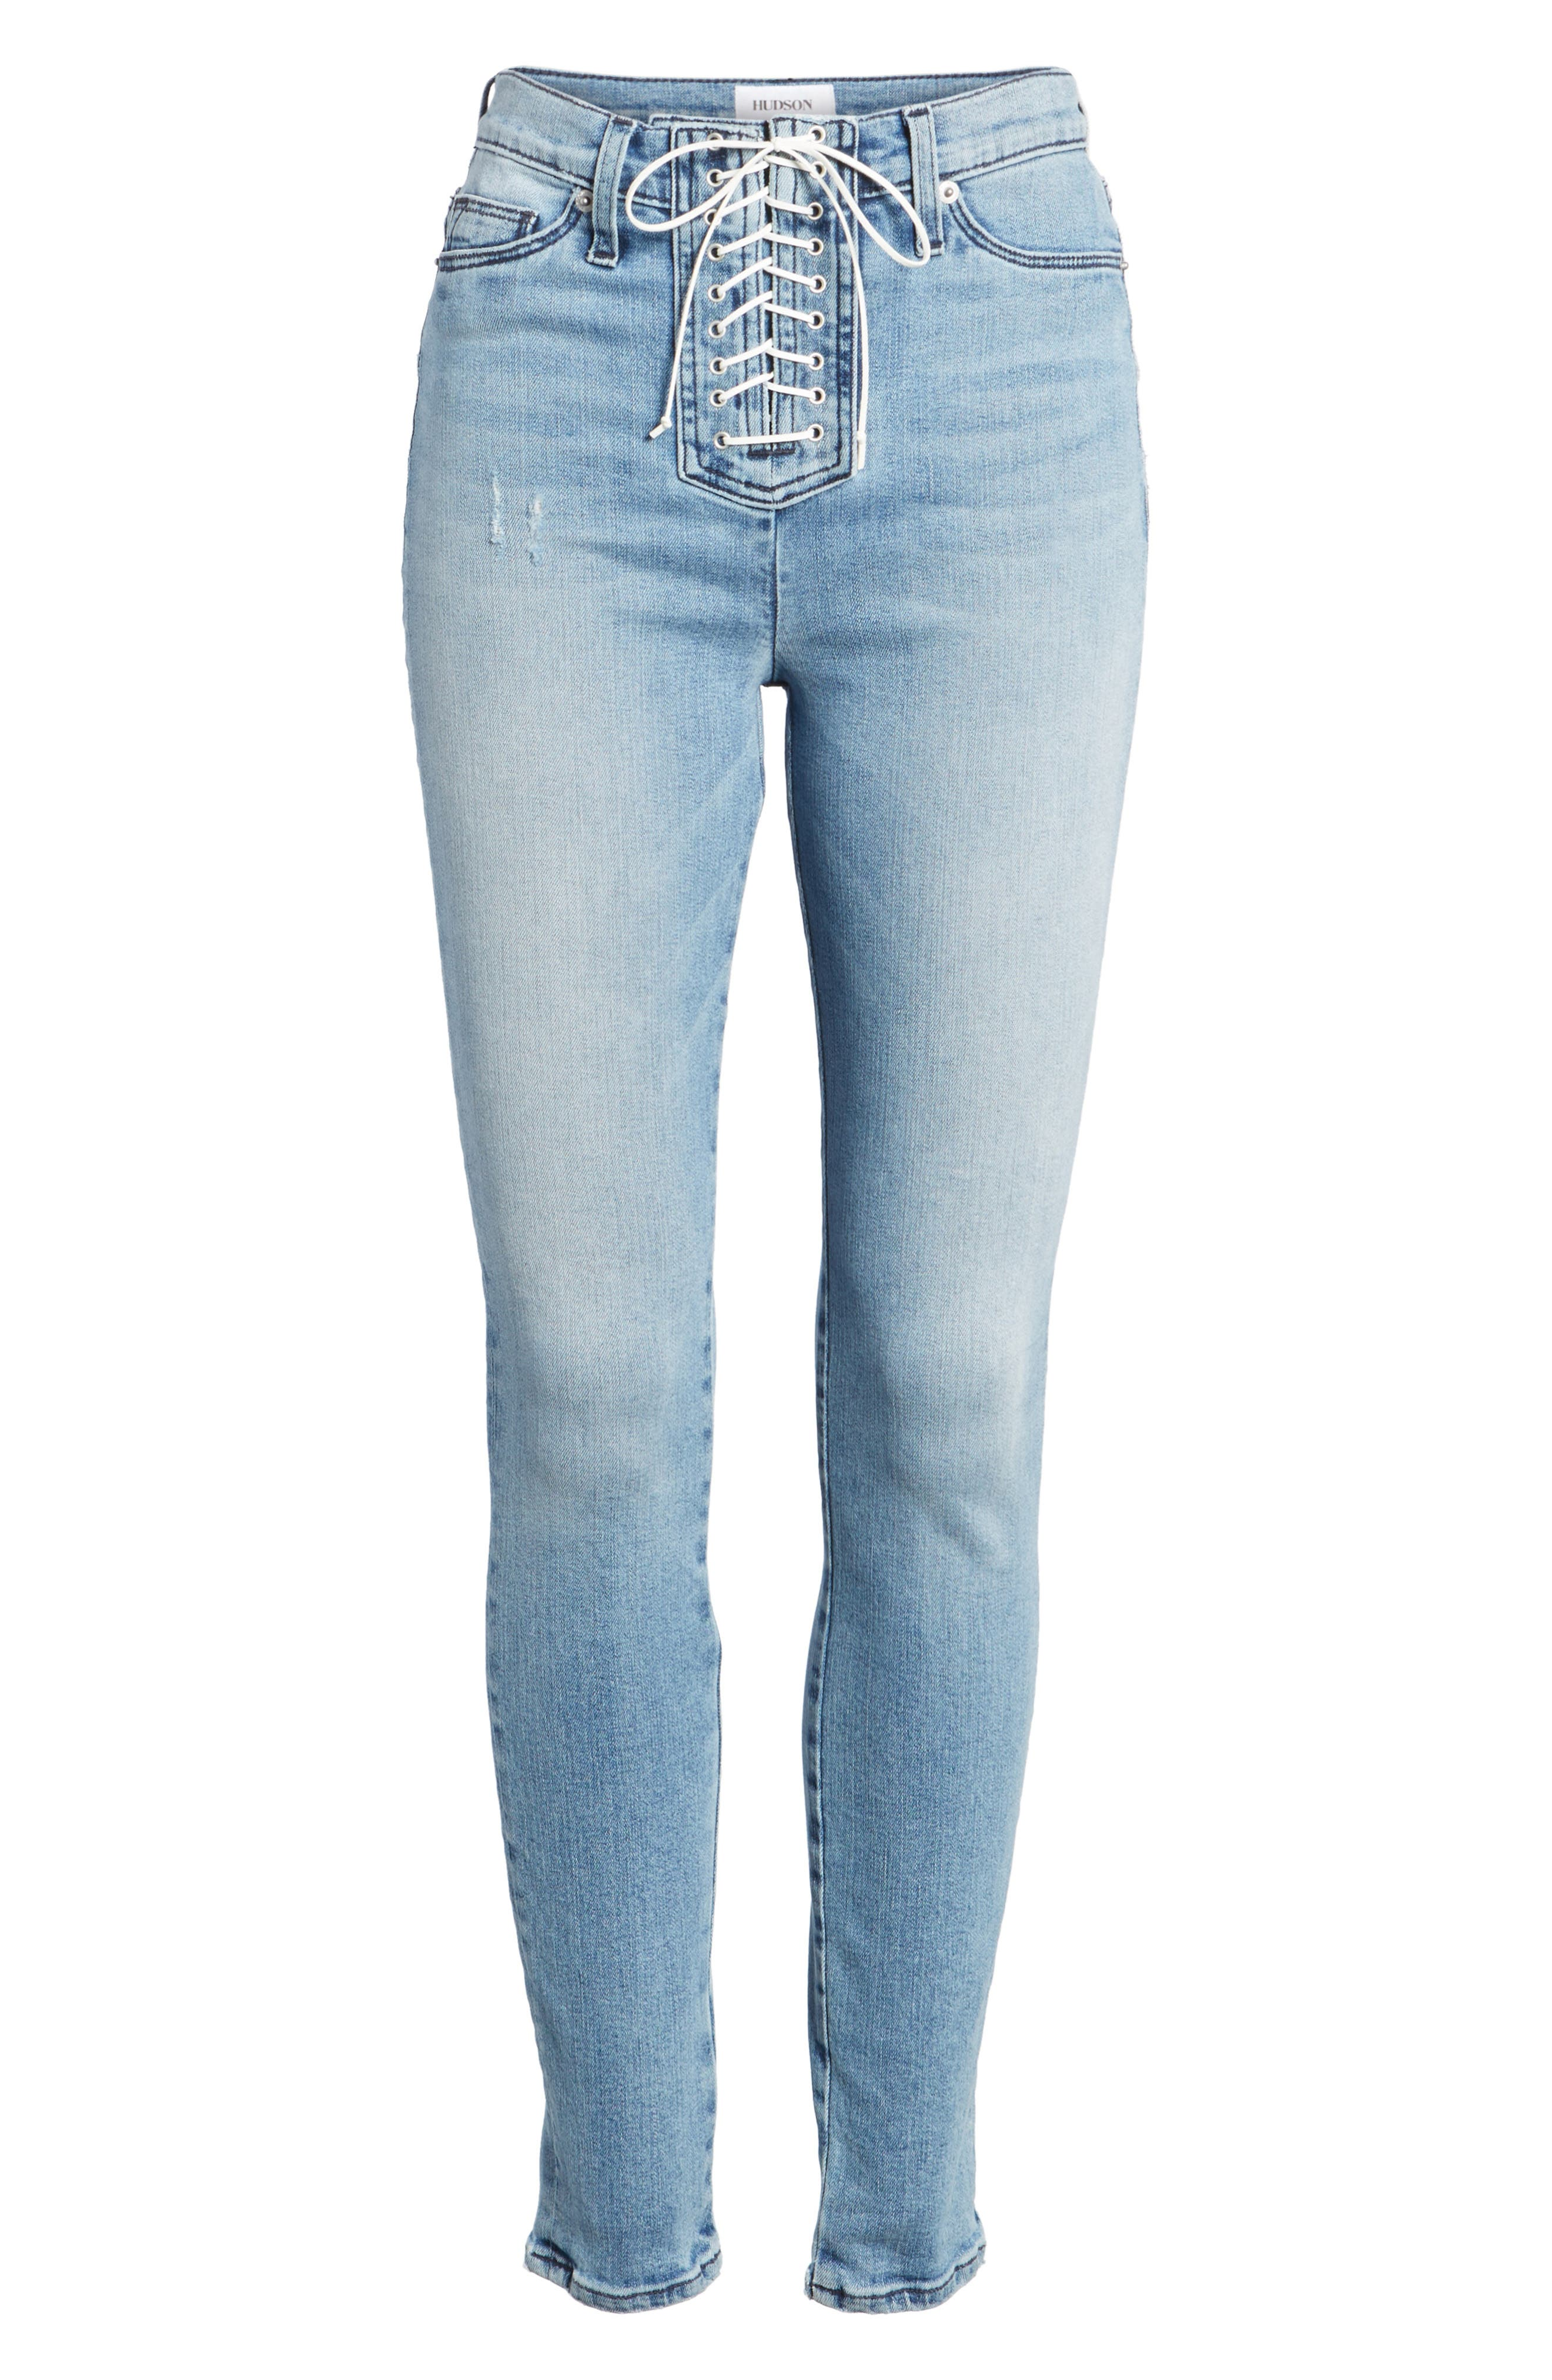 Bullocks Lace-Up High Waist Super Skinny Jeans,                             Alternate thumbnail 7, color,                             Guilty Pleasure